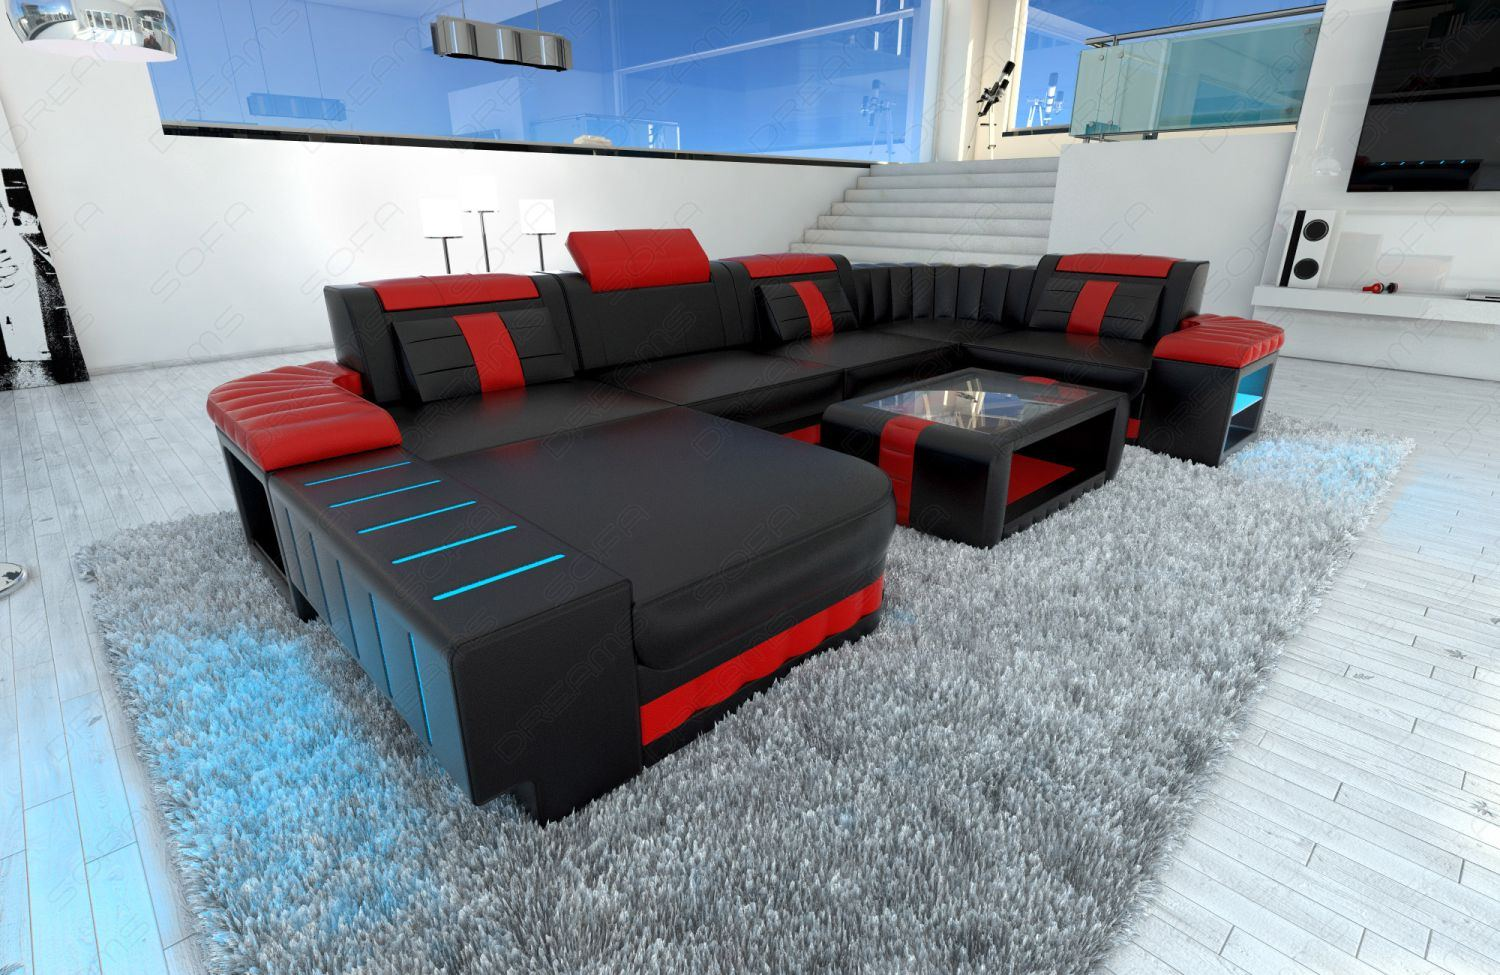 wohnlandschaft bellagio u form leder schwarz rot mit led glasablage ebay. Black Bedroom Furniture Sets. Home Design Ideas